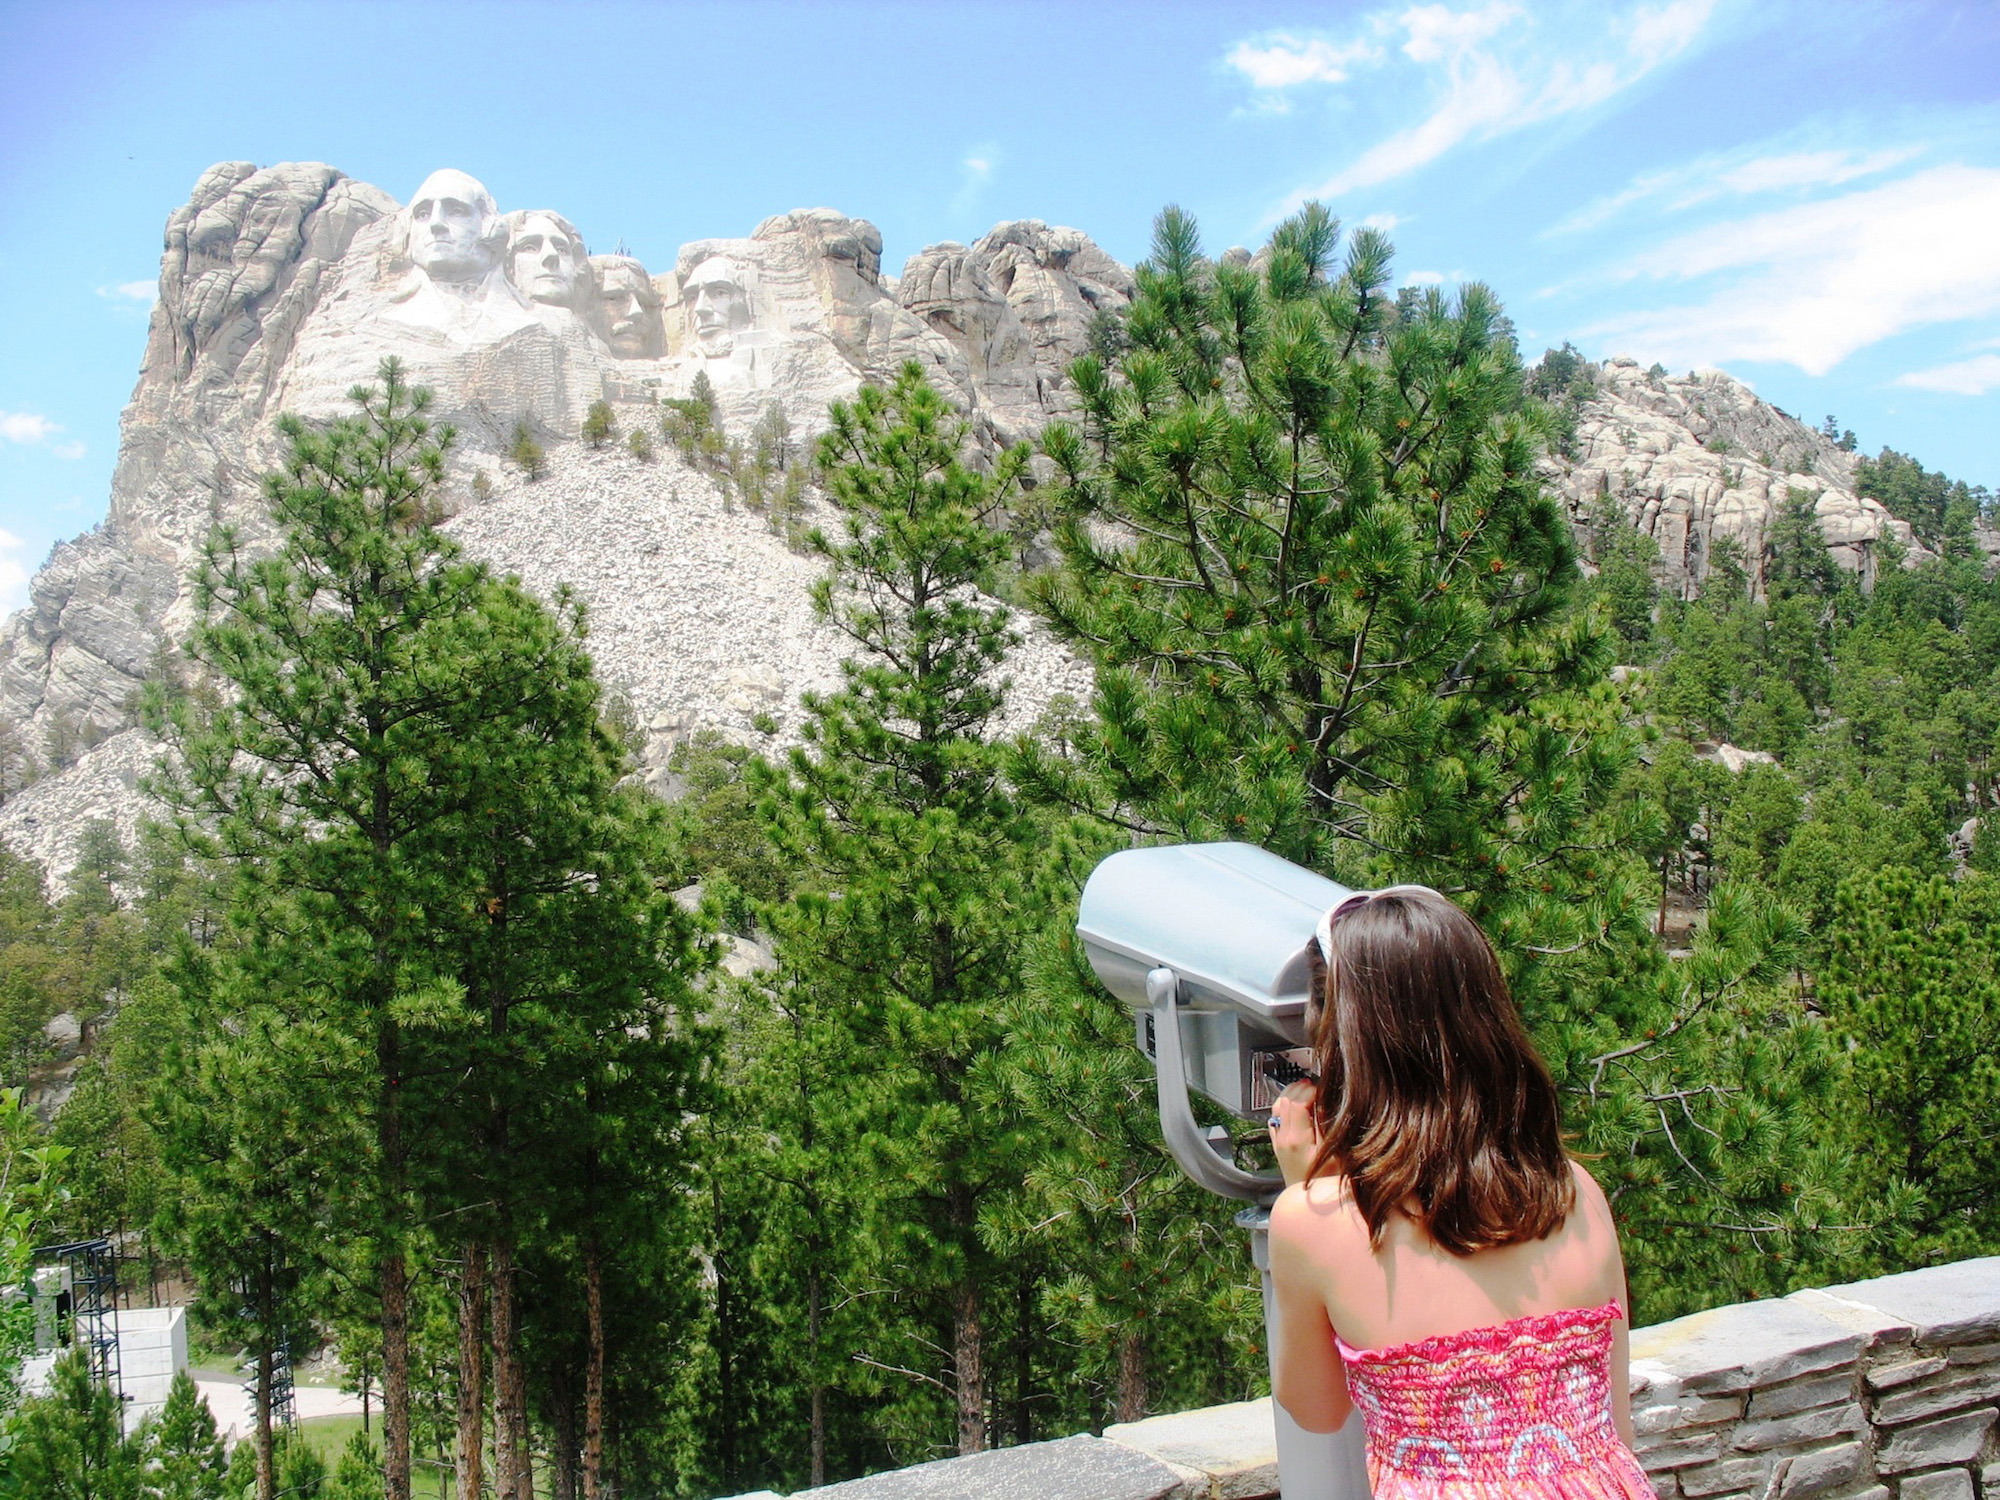 Hotel With View Of Mount Rushmore